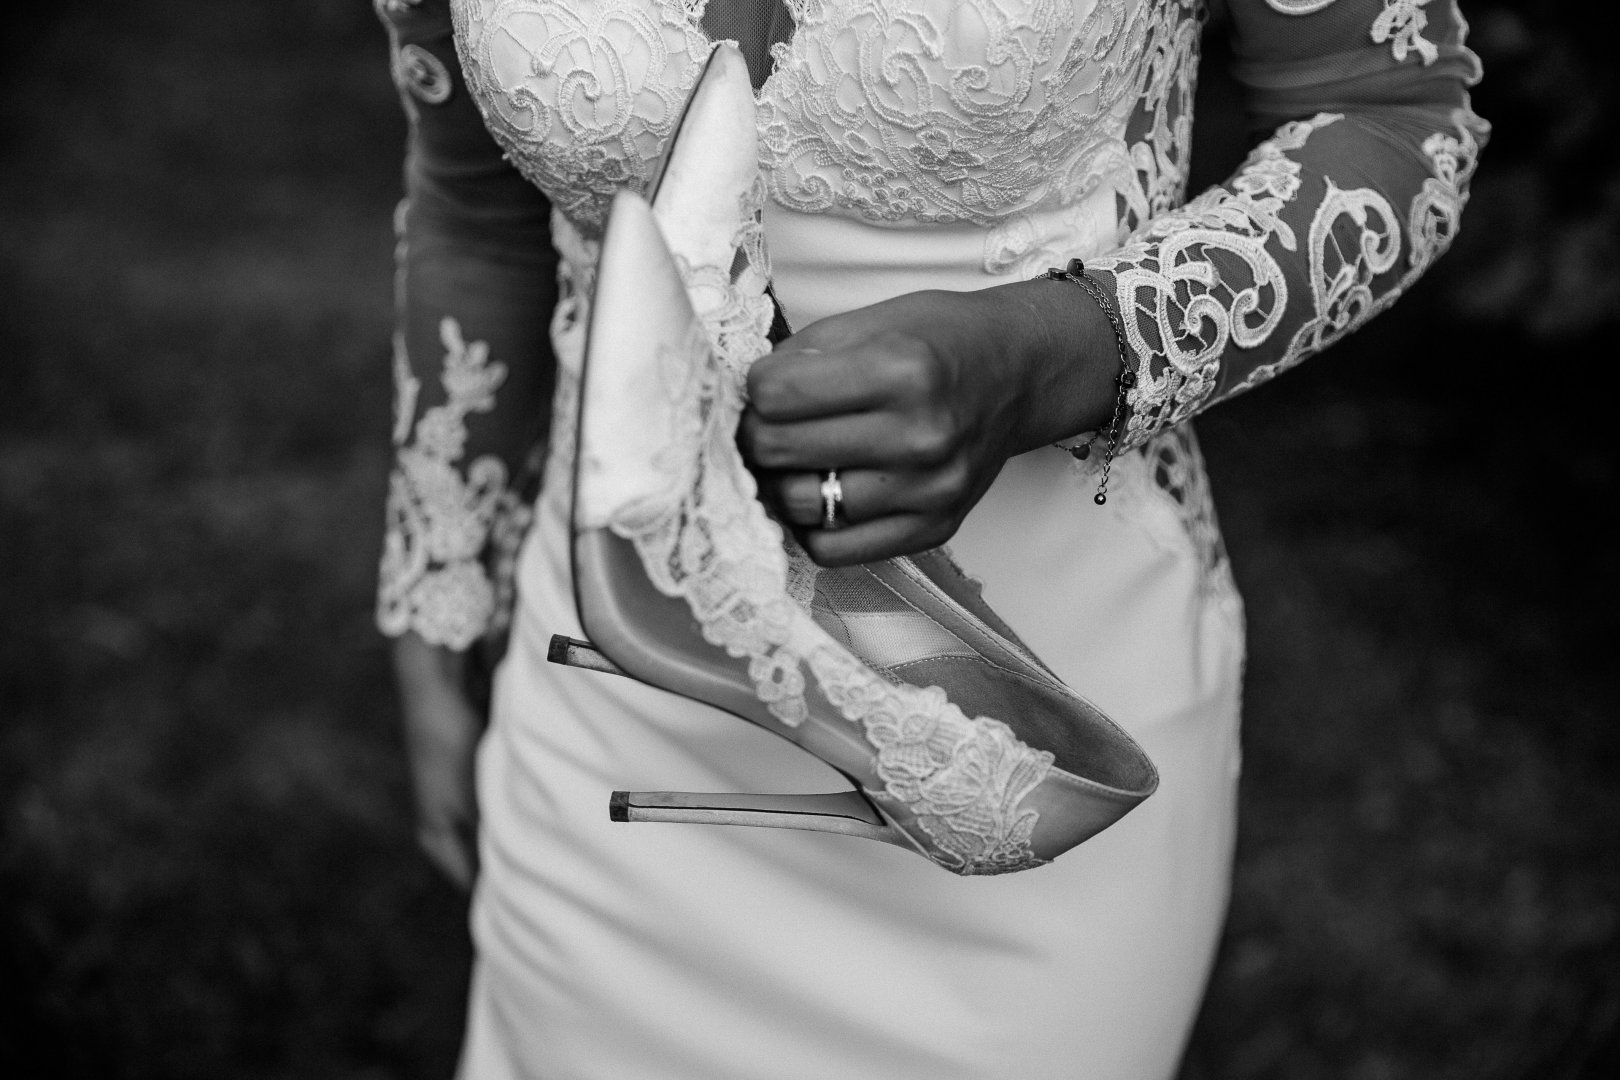 White Photograph Hand Black-and-white Male Monochrome photography Bride Dress Arm Photography Wedding Monochrome Ceremony Elbow Finger Stock photography Wedding dress Style Groom Gesture